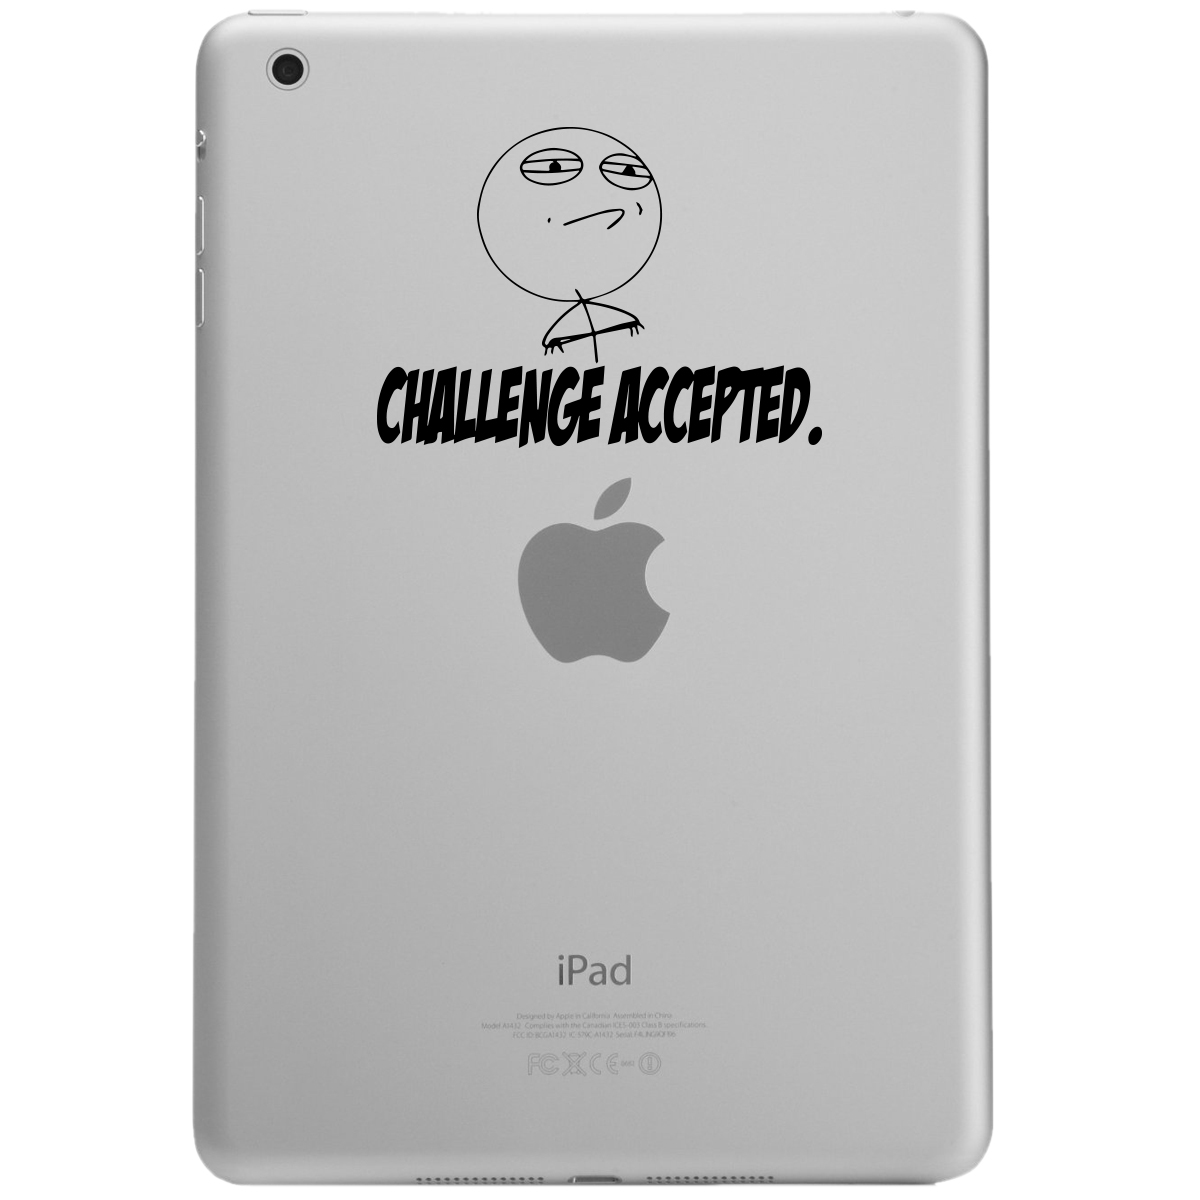 Meme Face Challenge Accepted Funny iPad Tablet Vinyl Sticker Decal